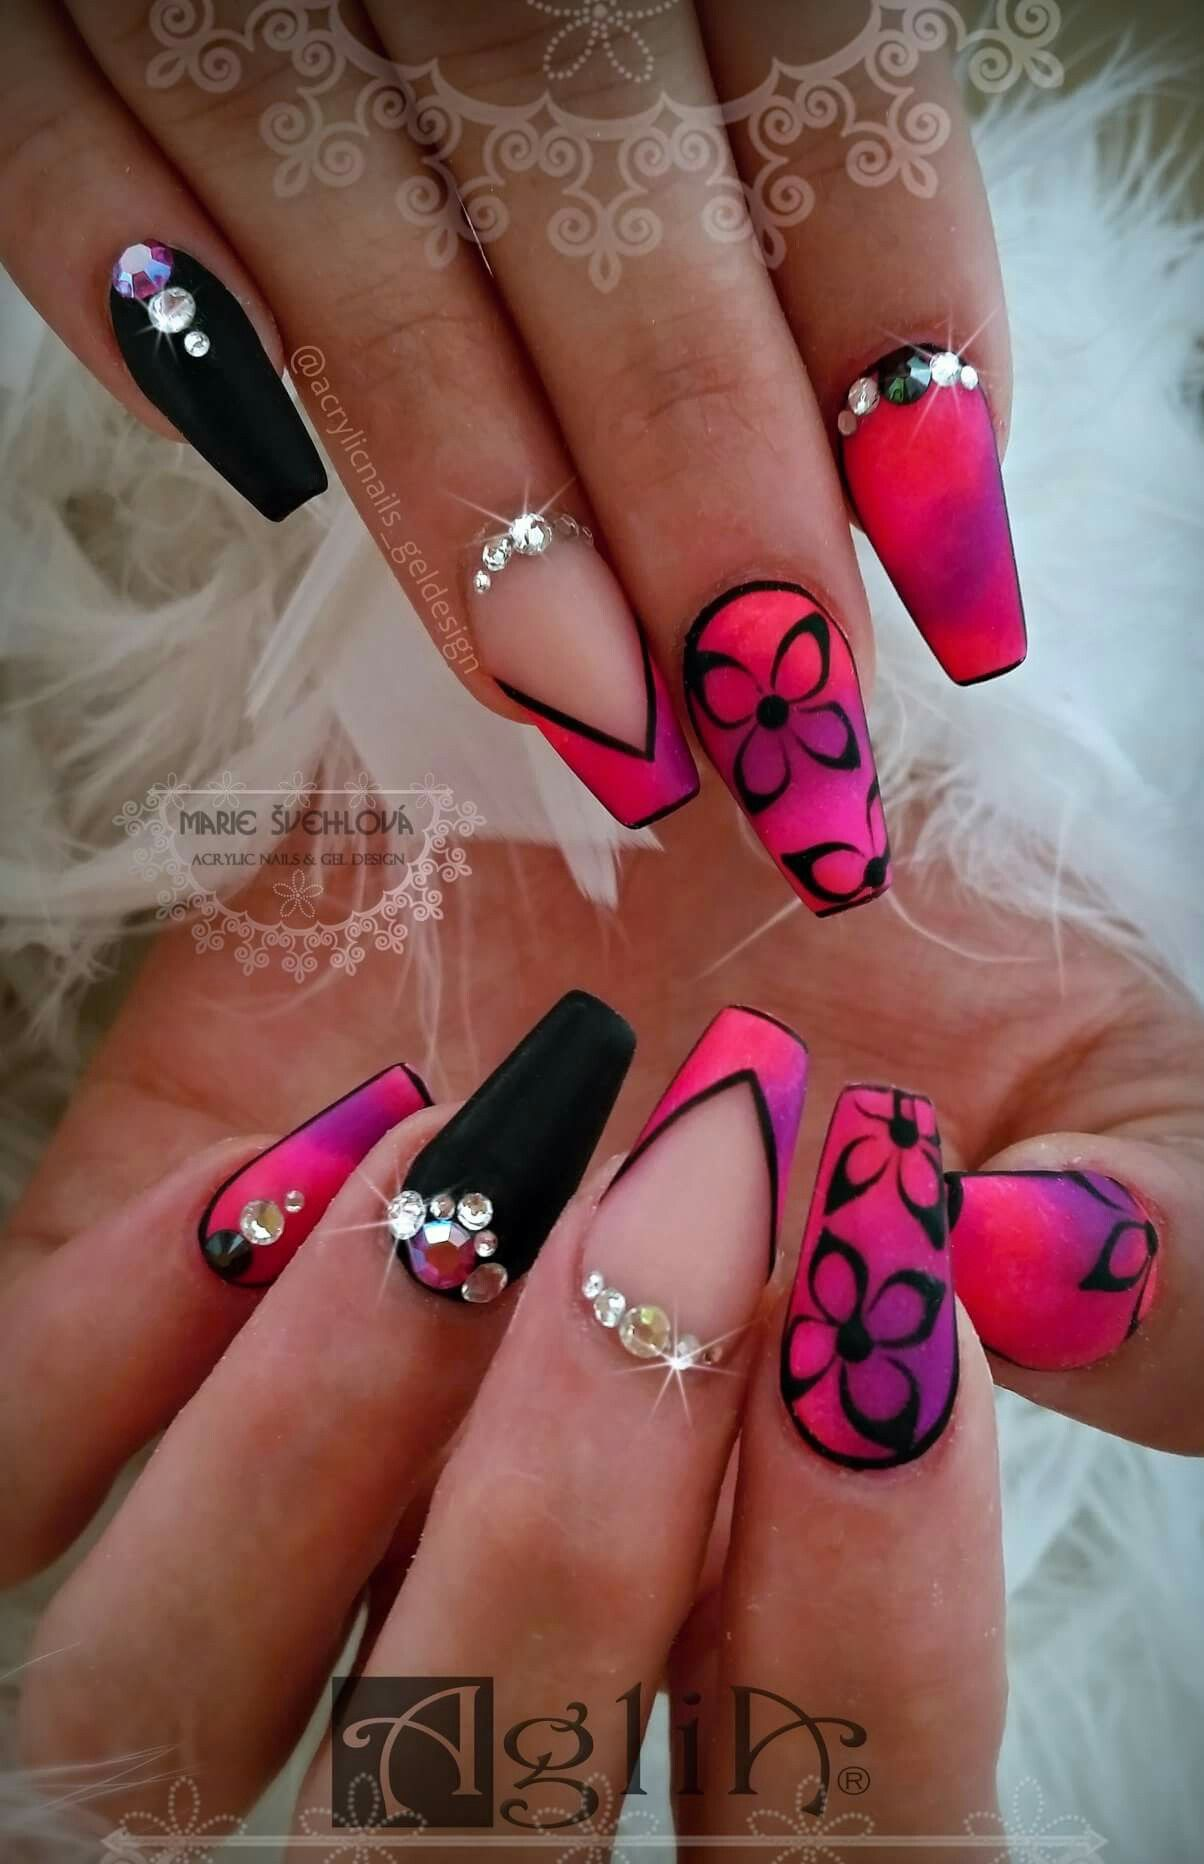 Acrylic Nails Gel Design Neon Nails Summer Nails Gelove Nehty Nail Art Nehty